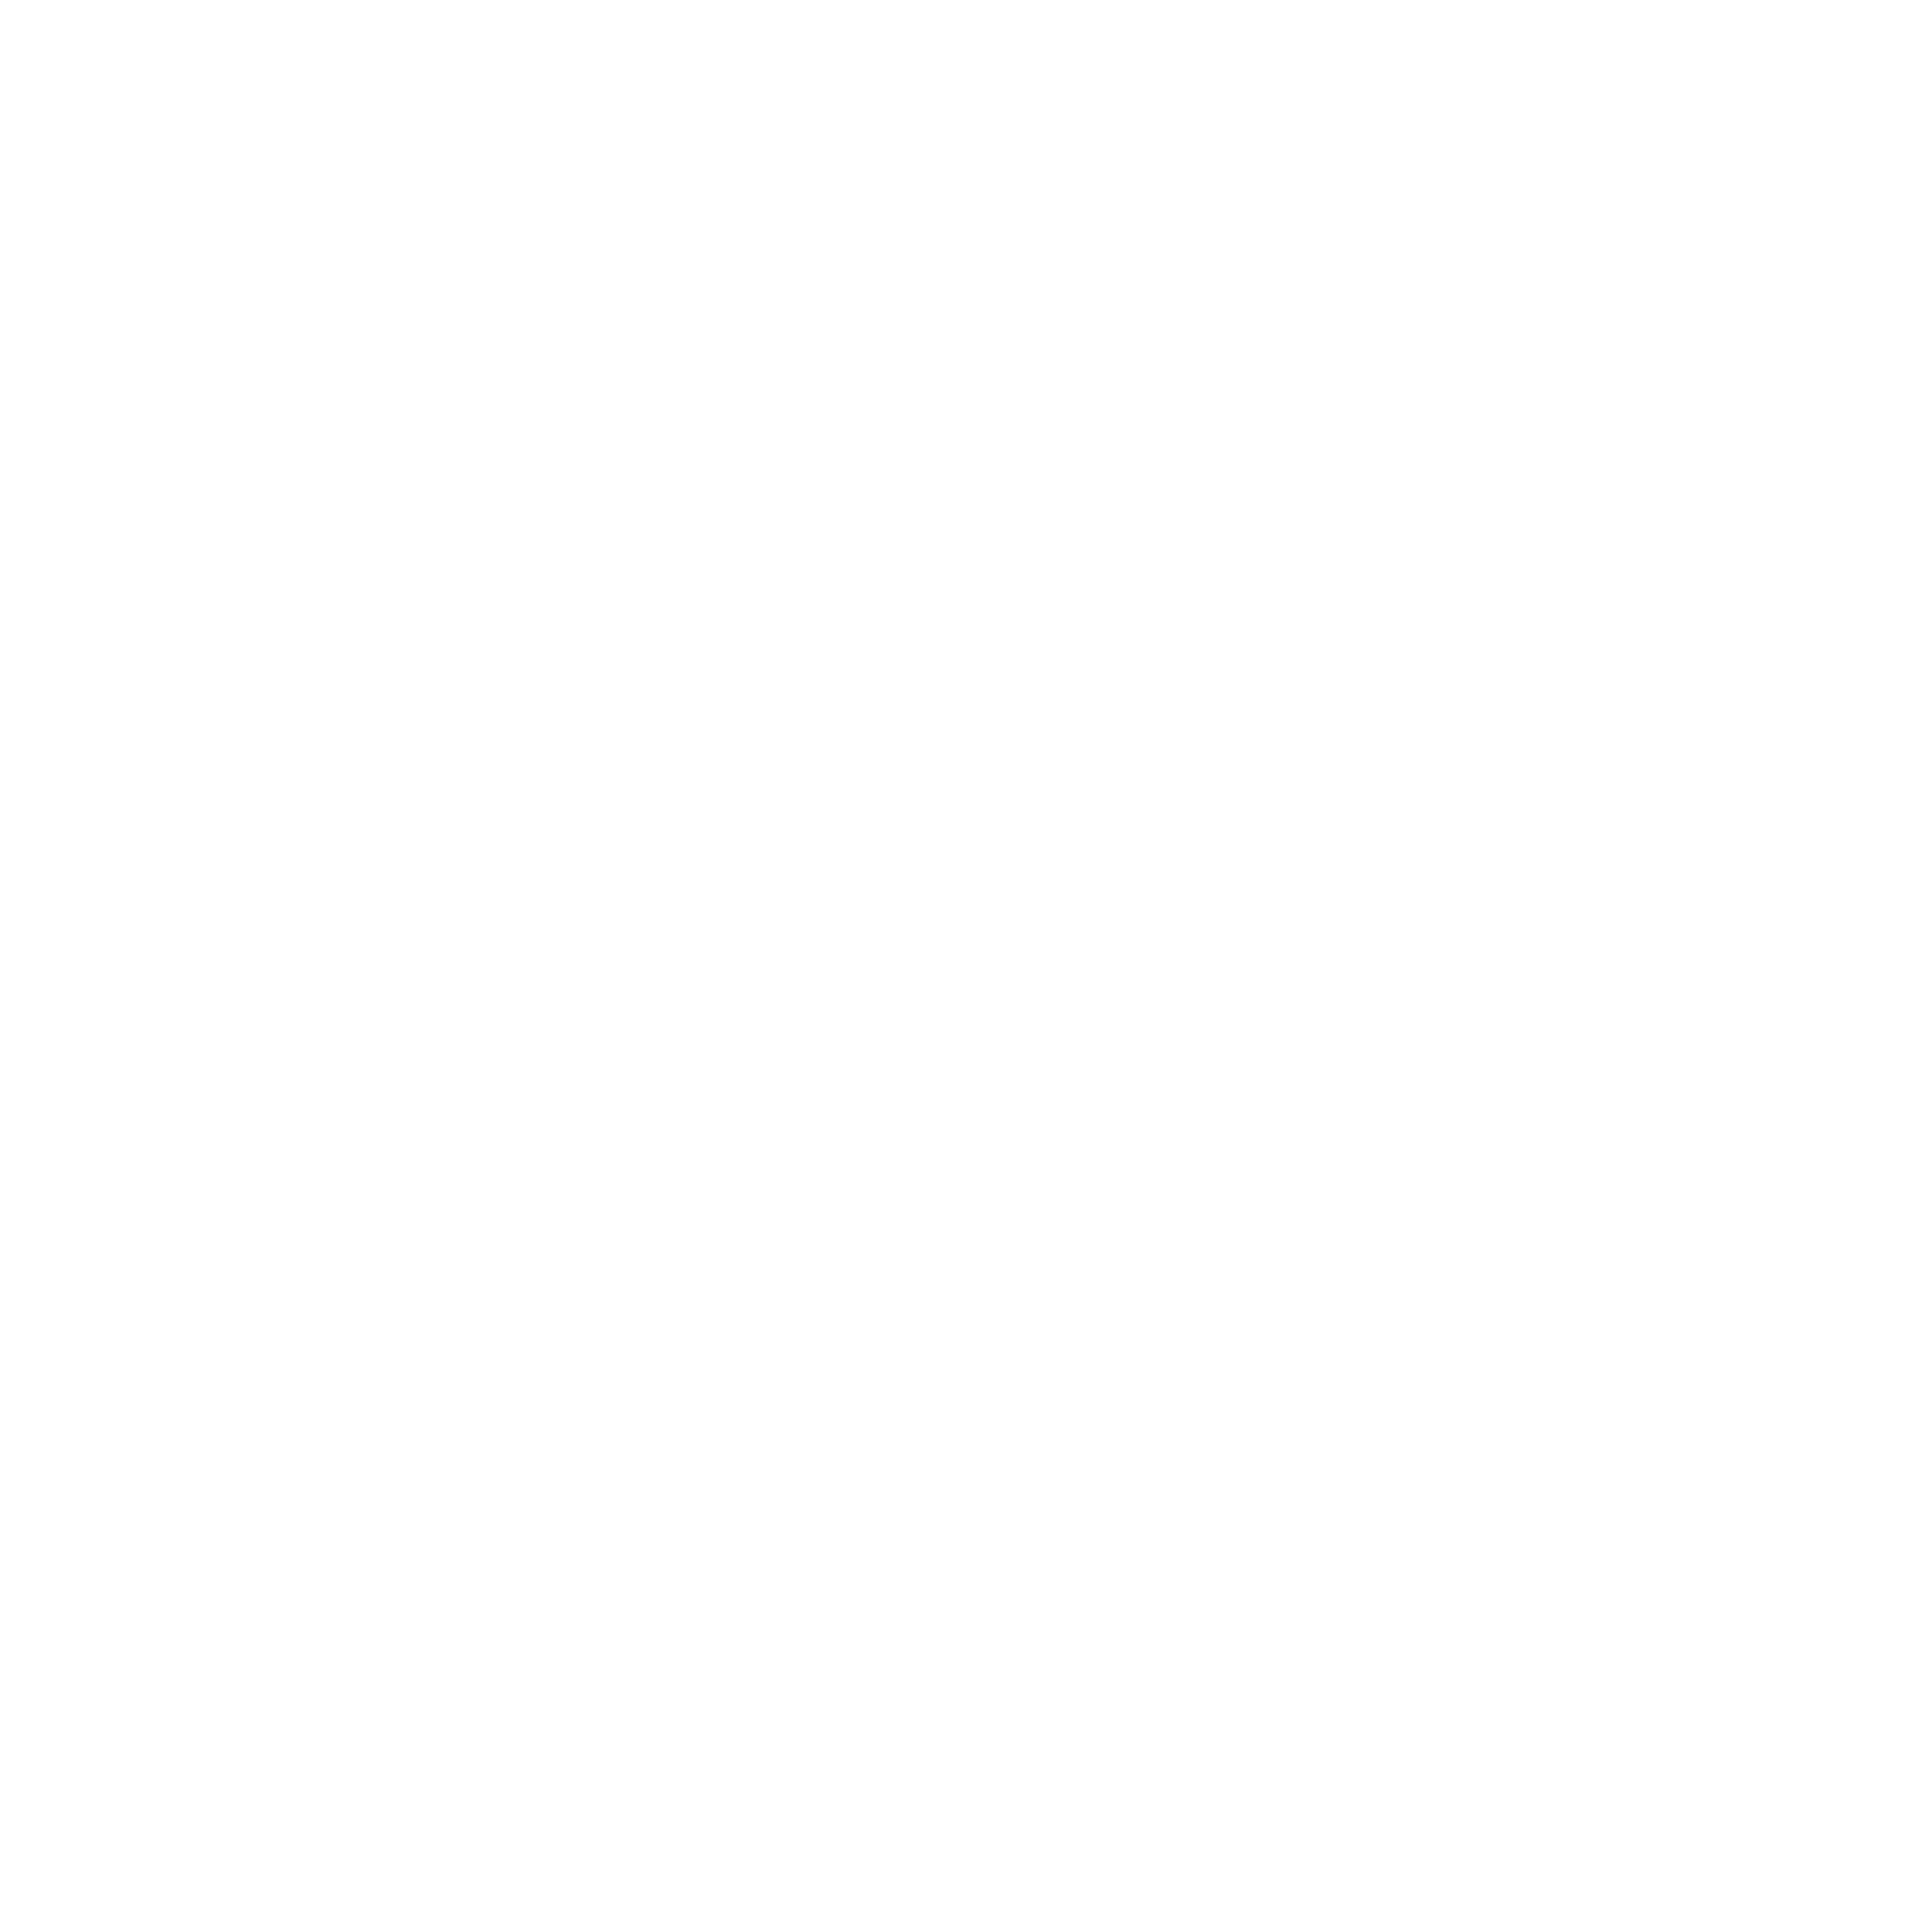 White question mark icon png. File svg wikimedia commons